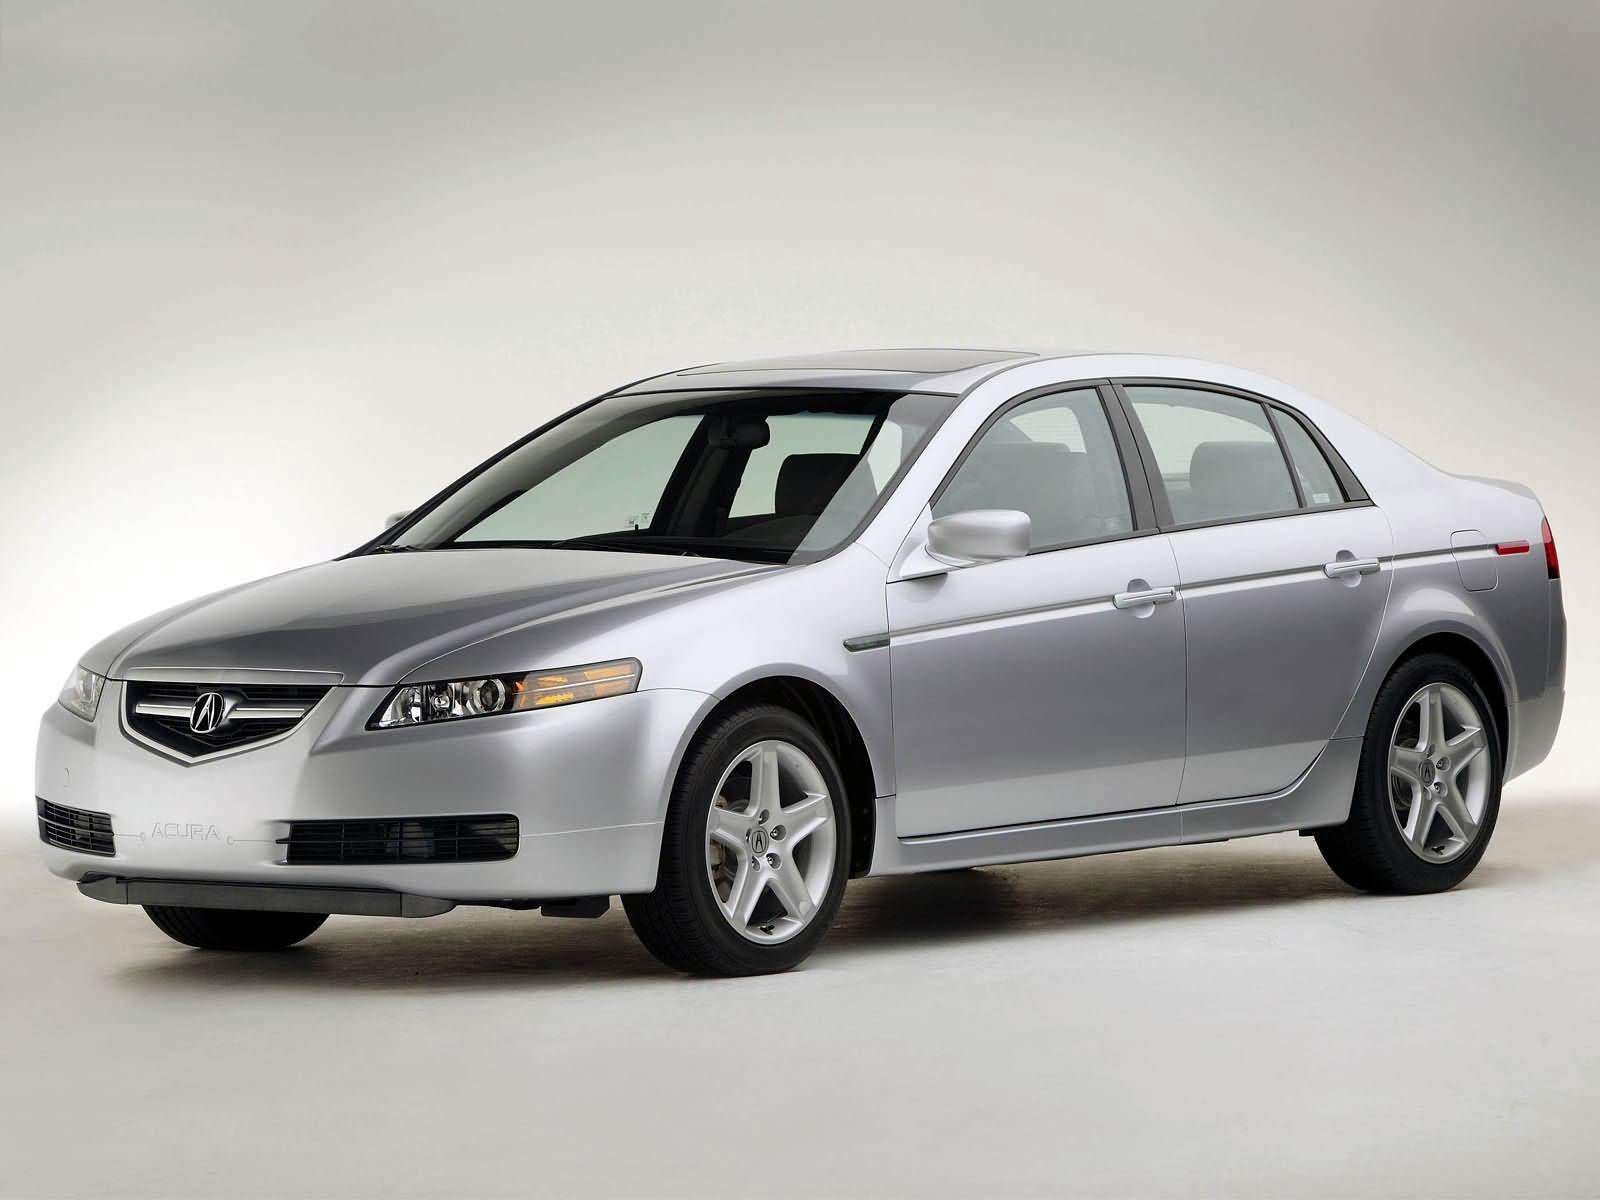 Latest 2004 Acura 32 Tl Auto Insurance Information Free Download